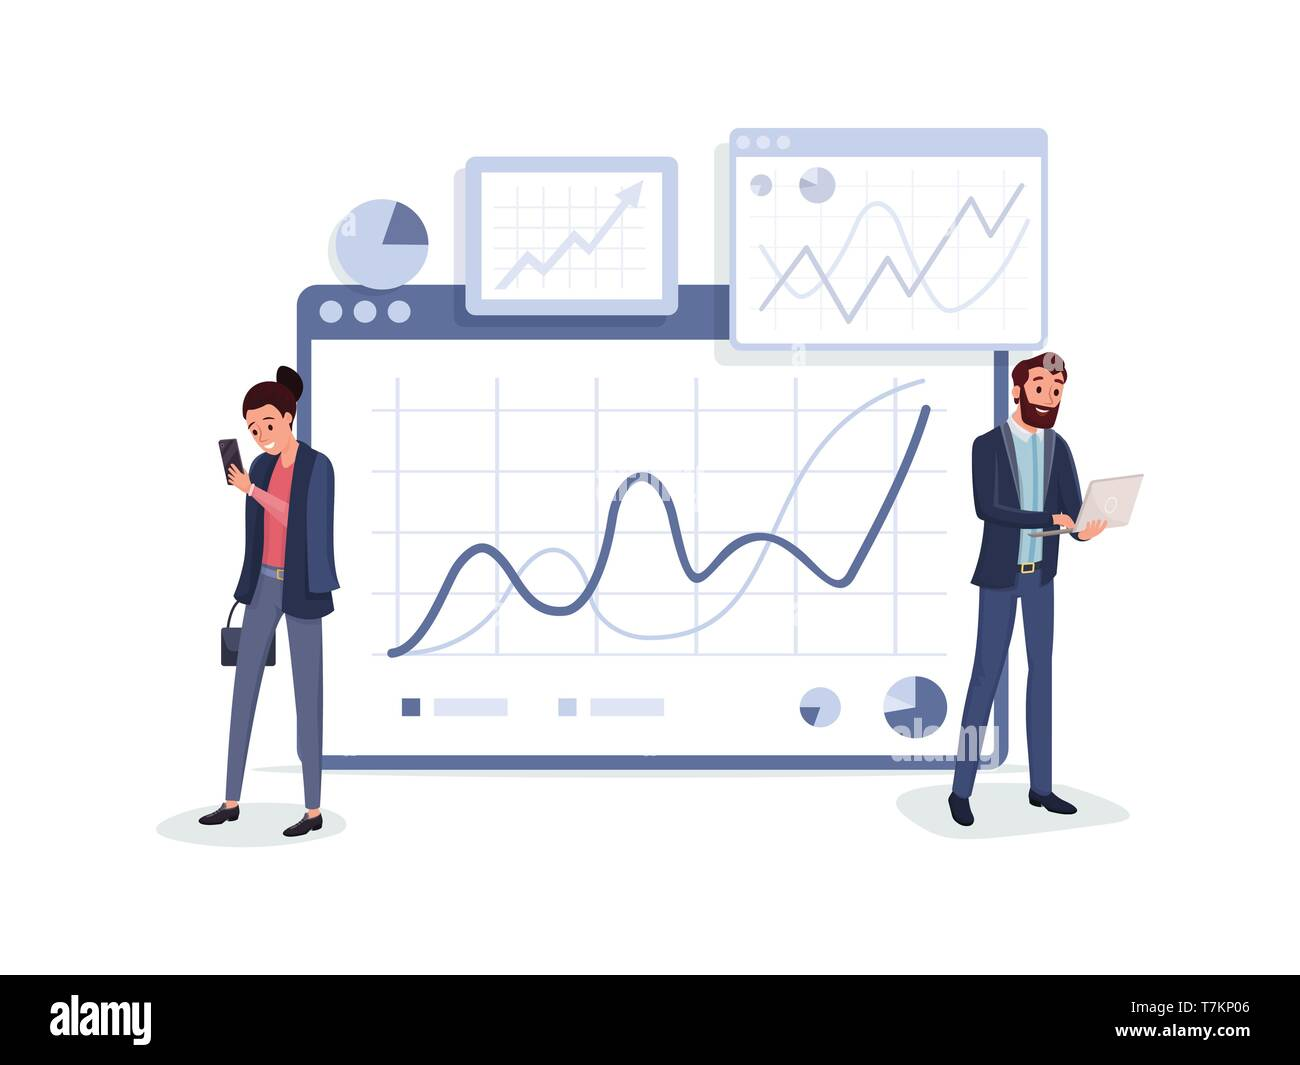 Cartoon business people in suits with laptop and smartphone standing near charts graphs diagrams vector illustration. Teamwork concept. Isolated on white - Stock Vector